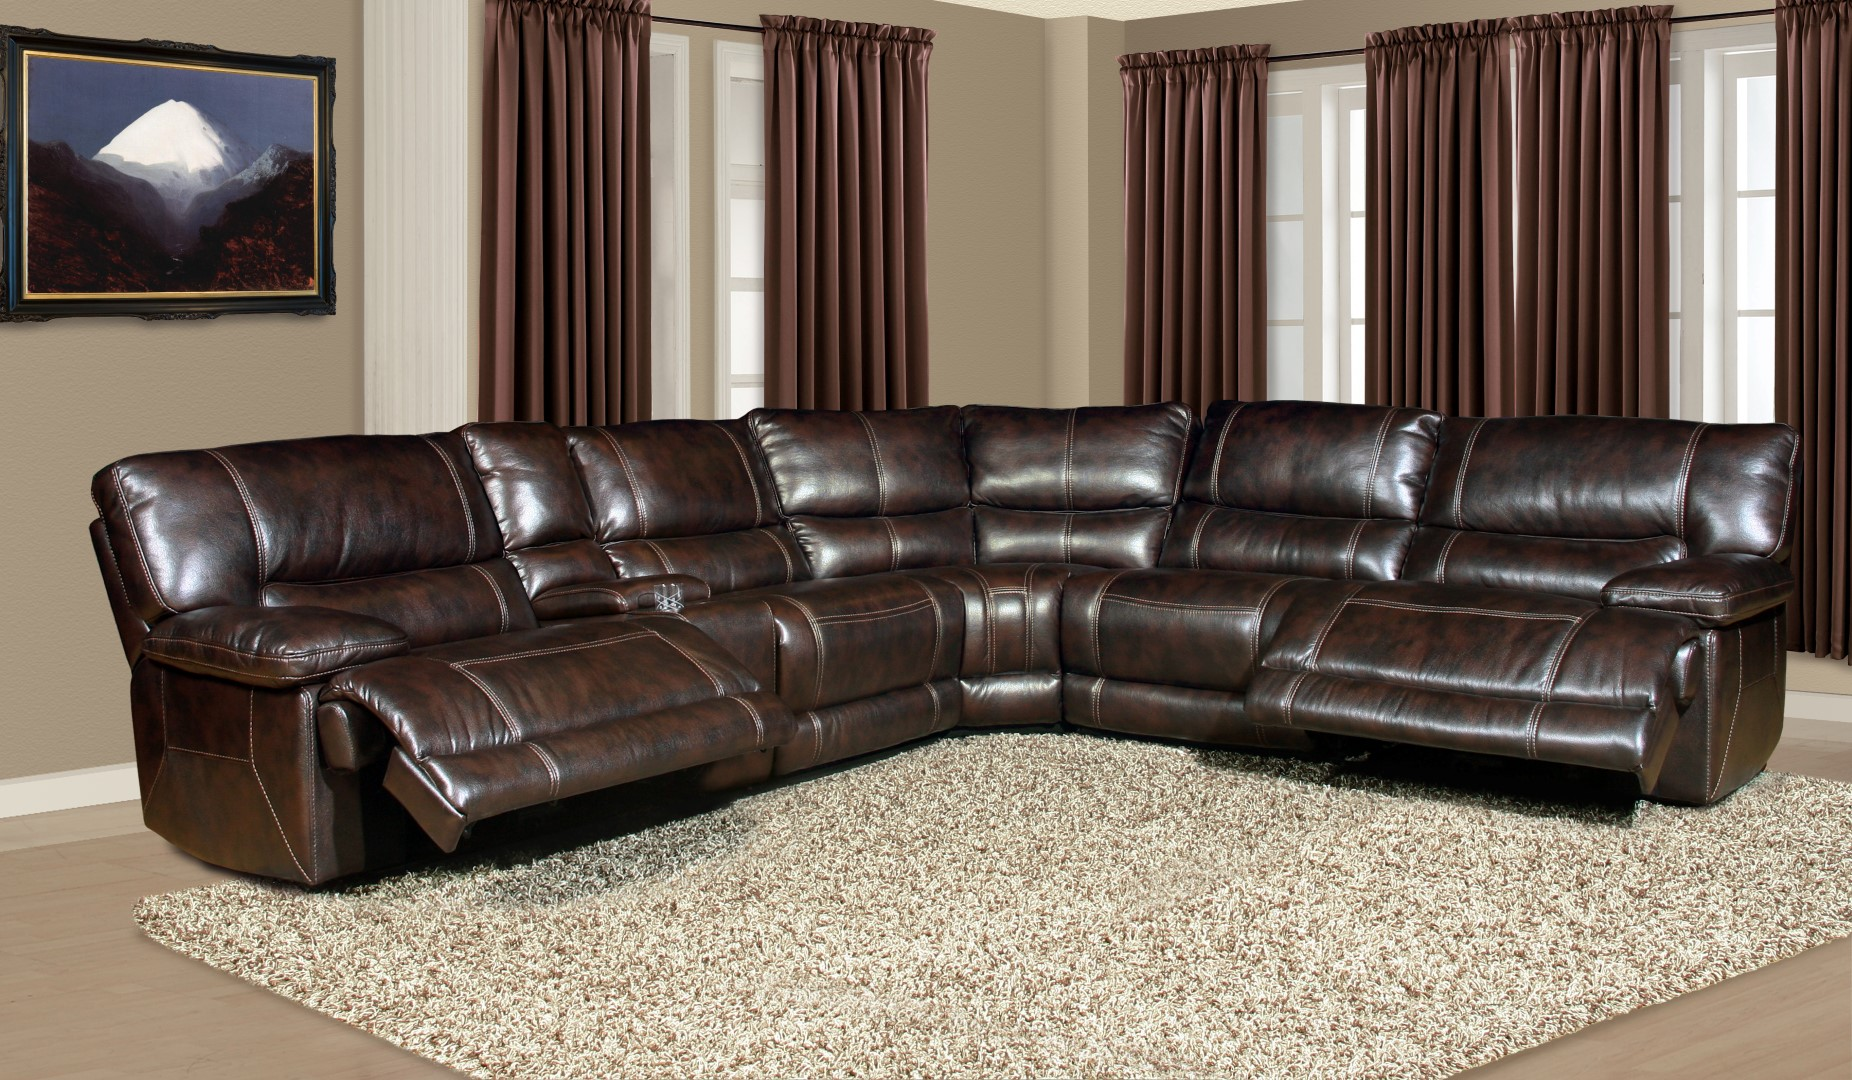 virtuemart_product_univ-pegasus-leather-sectional-